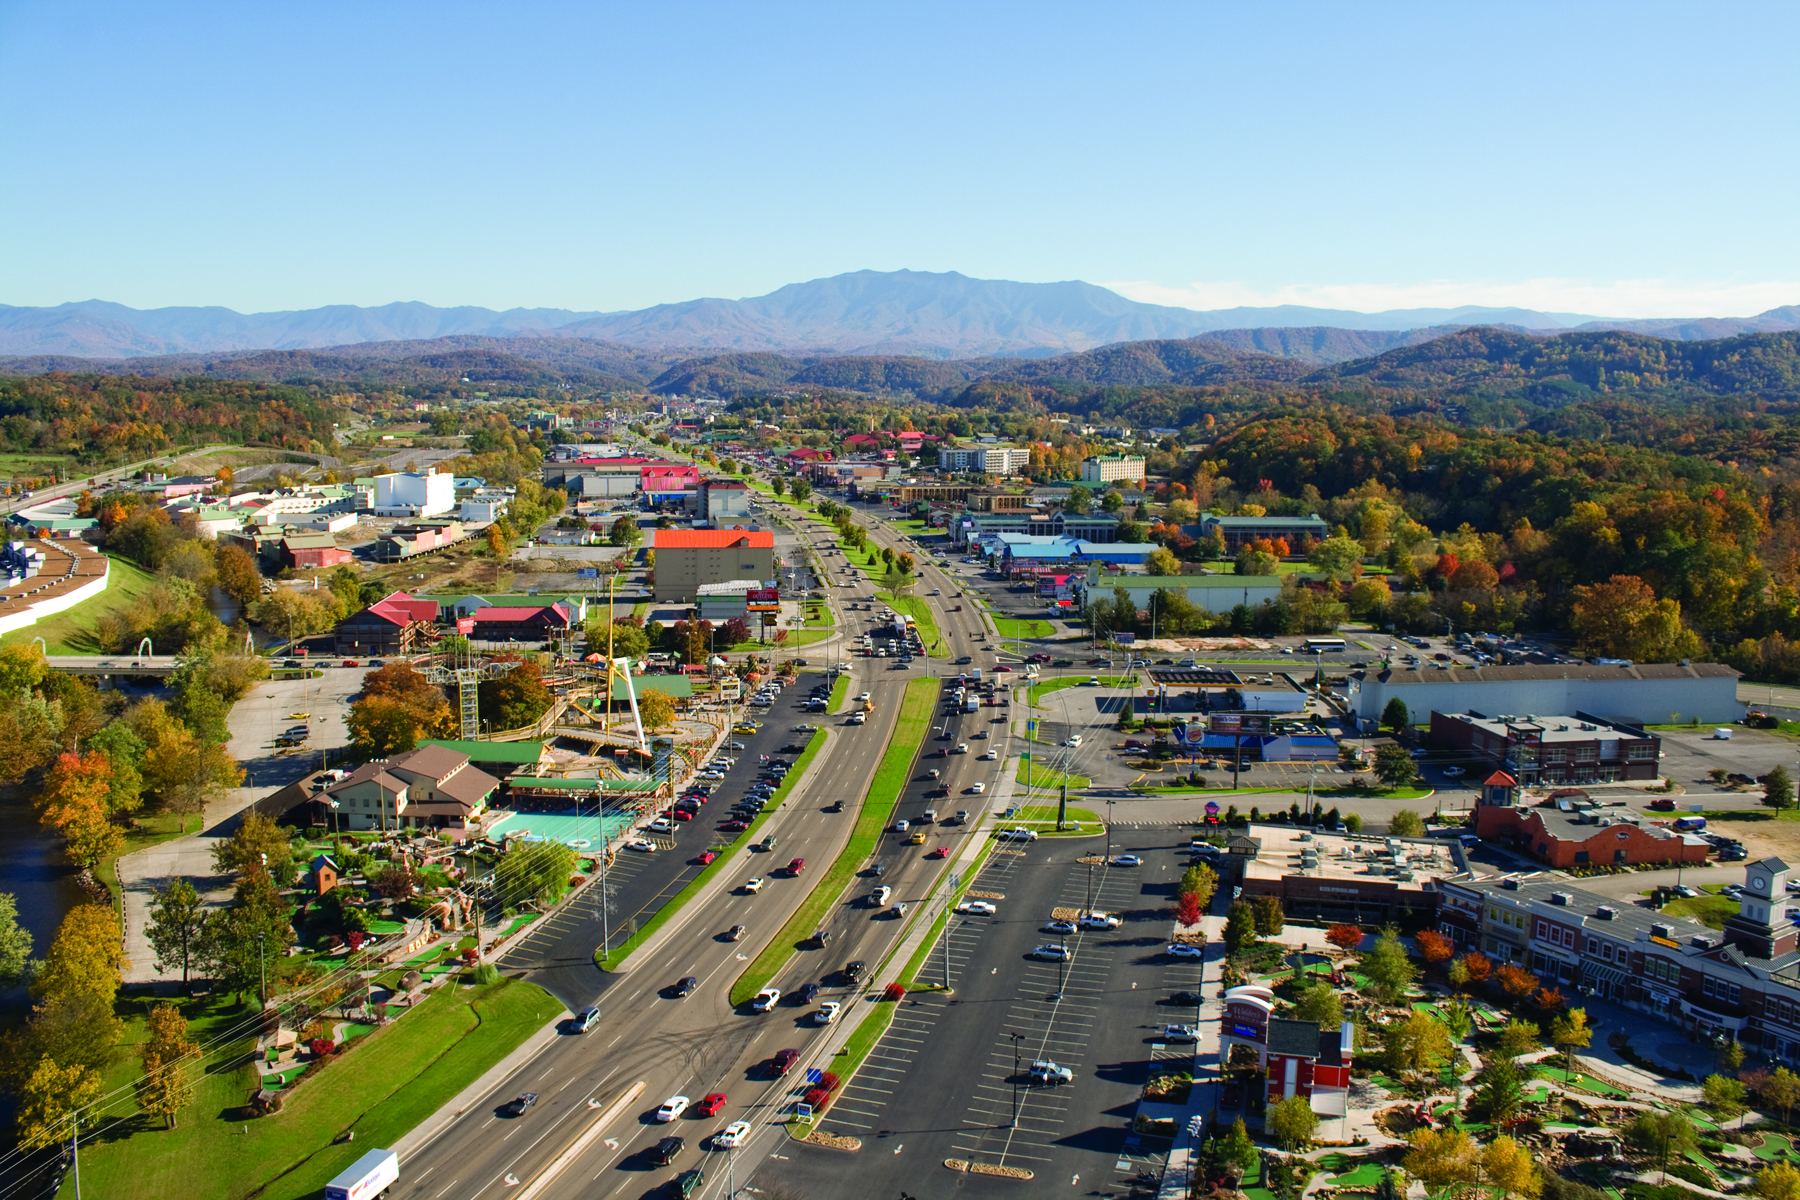 Fall In The Smokies Wallpaper Pigeon Forge Smokies To Get Pbs Exposure Pigeon Forge